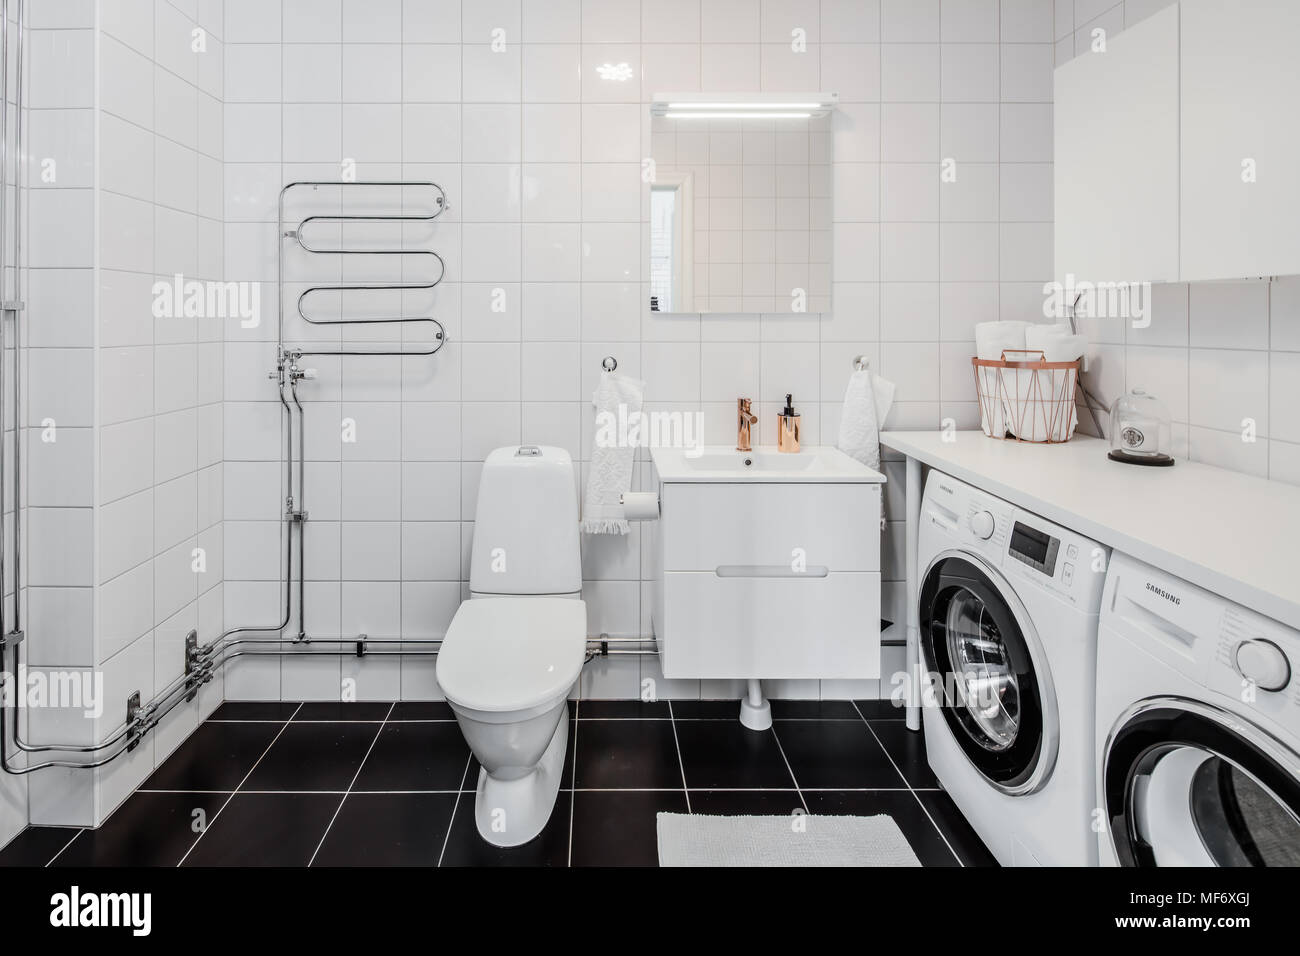 Black Tiled Bathroom Black And White Tiled Bathroom With Washing Machines Stock